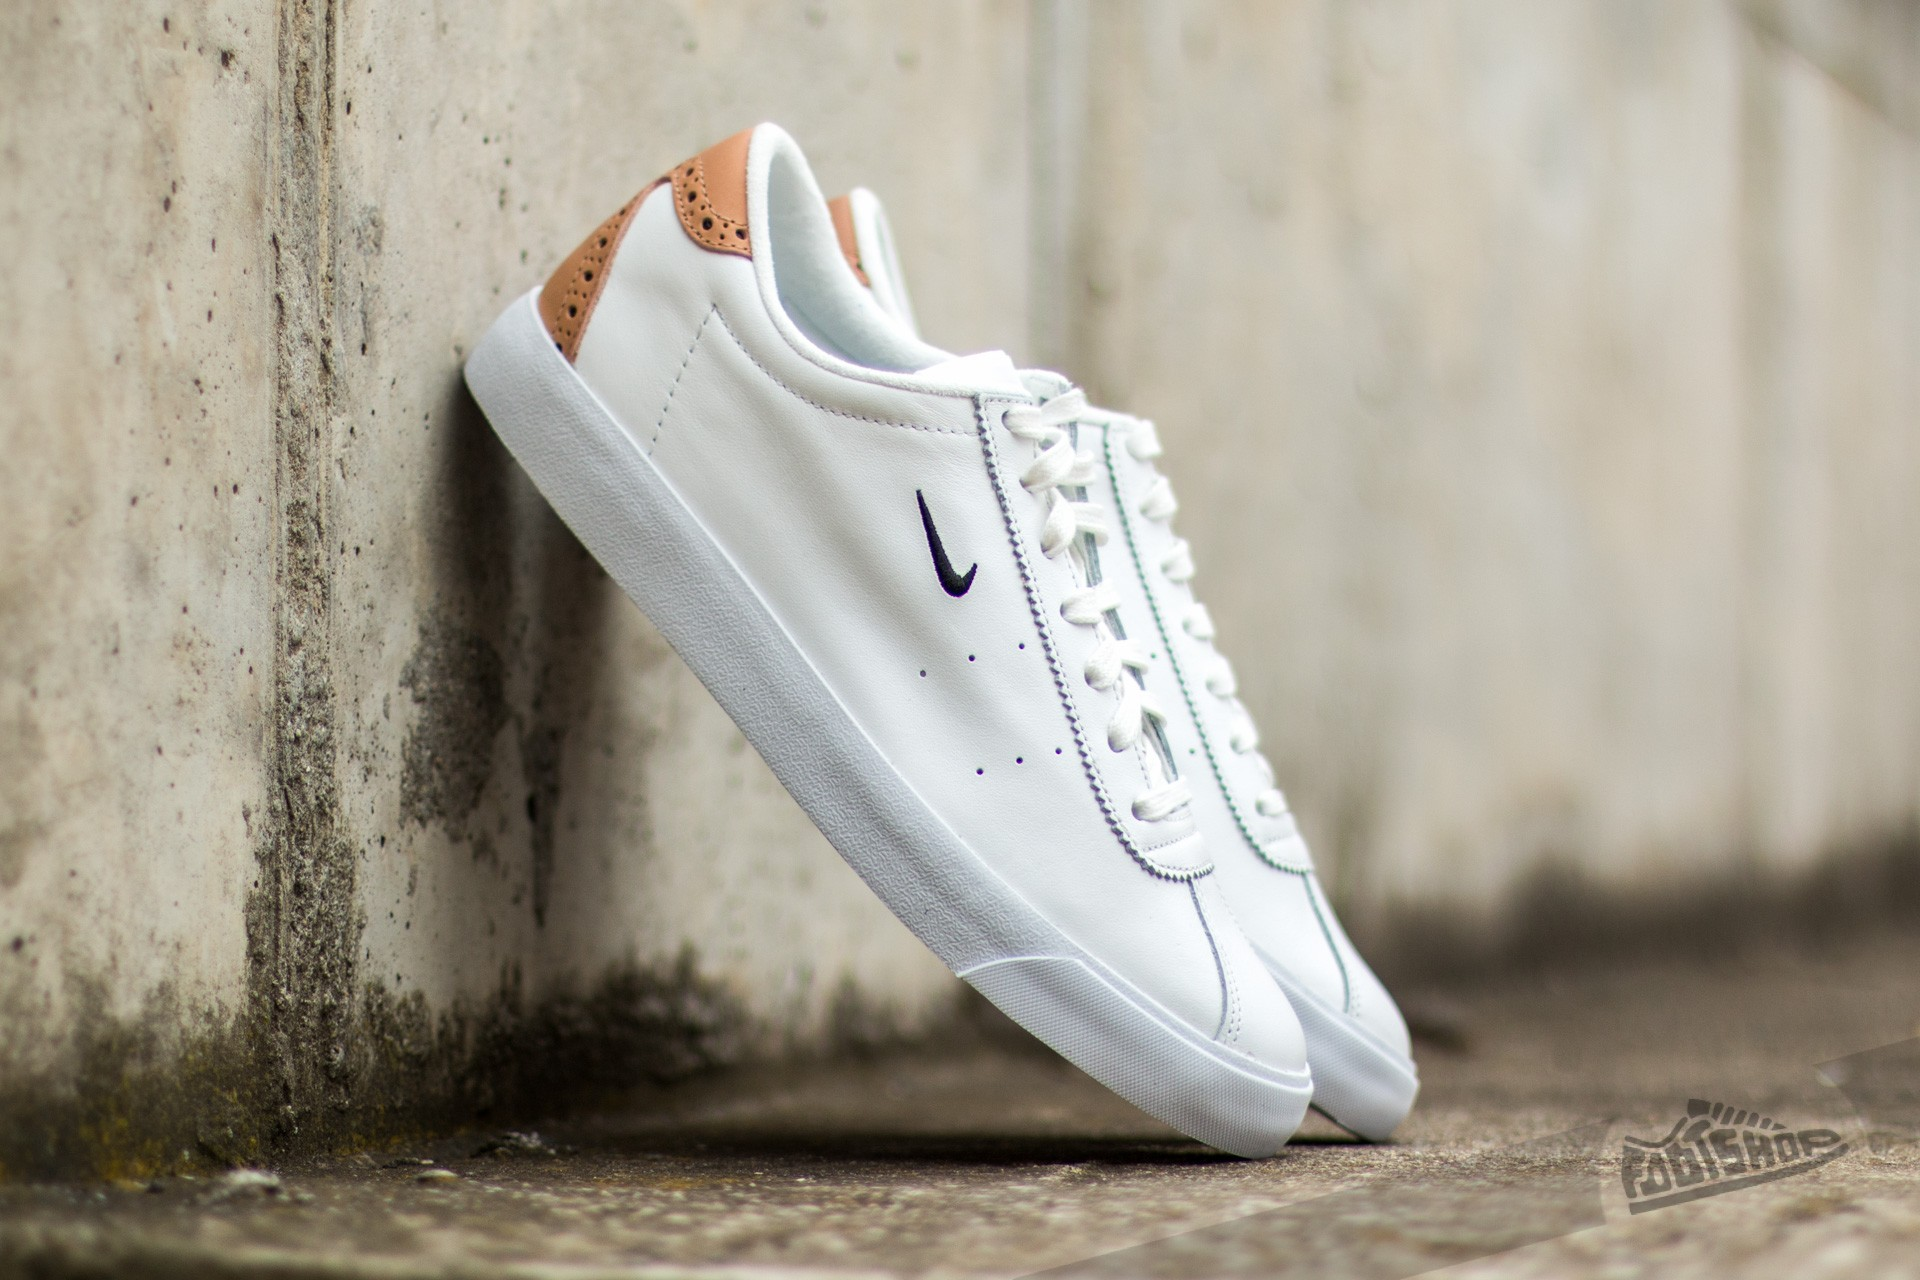 75fa29918999 Nike Match Classic Suede Summit White  Black-Vachetta Tan